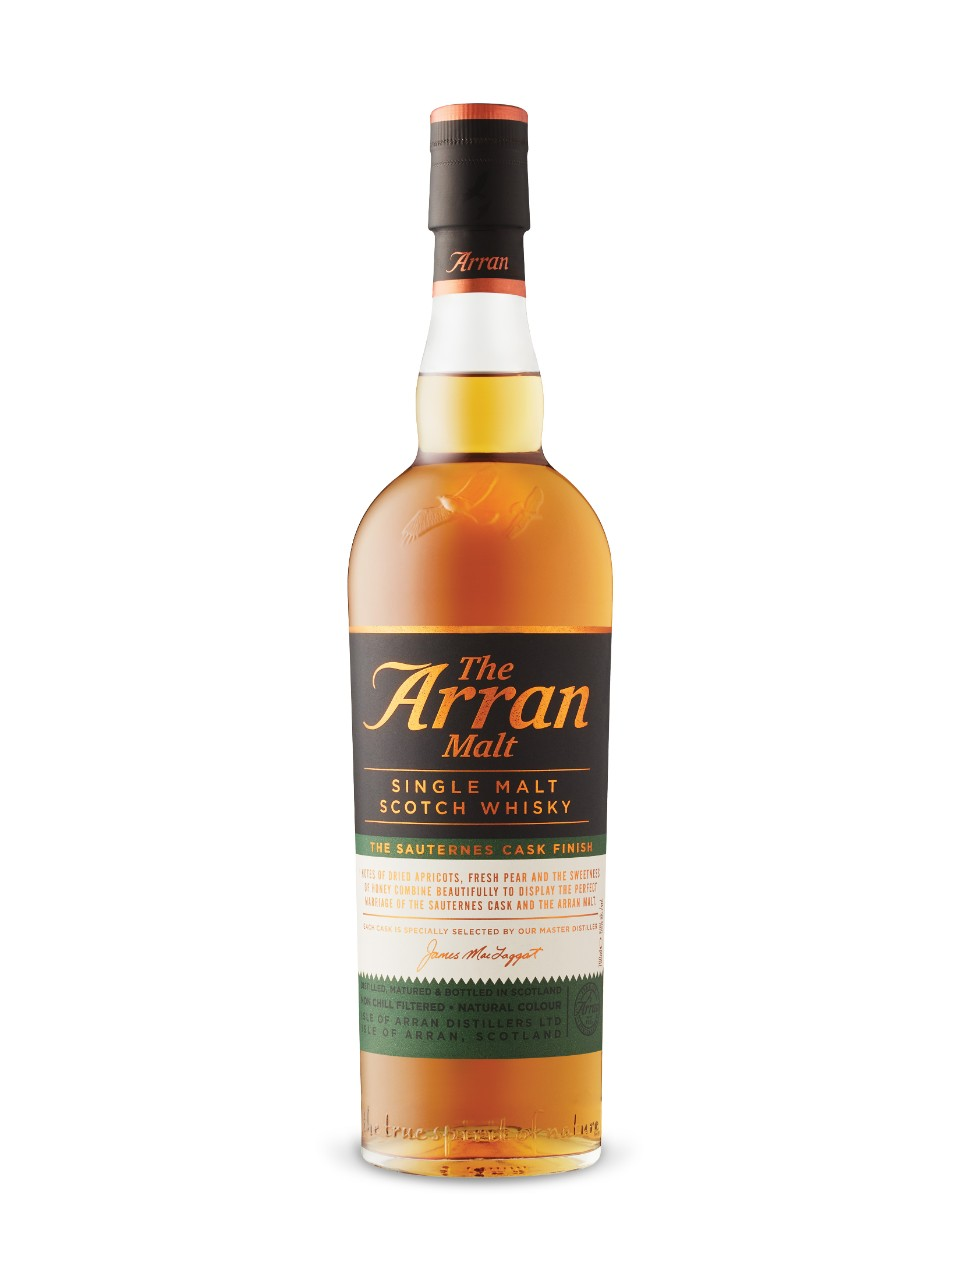 Image for The Arran Malt The Sauternes Cask Finish Single Malt Scotch Whisky from LCBO